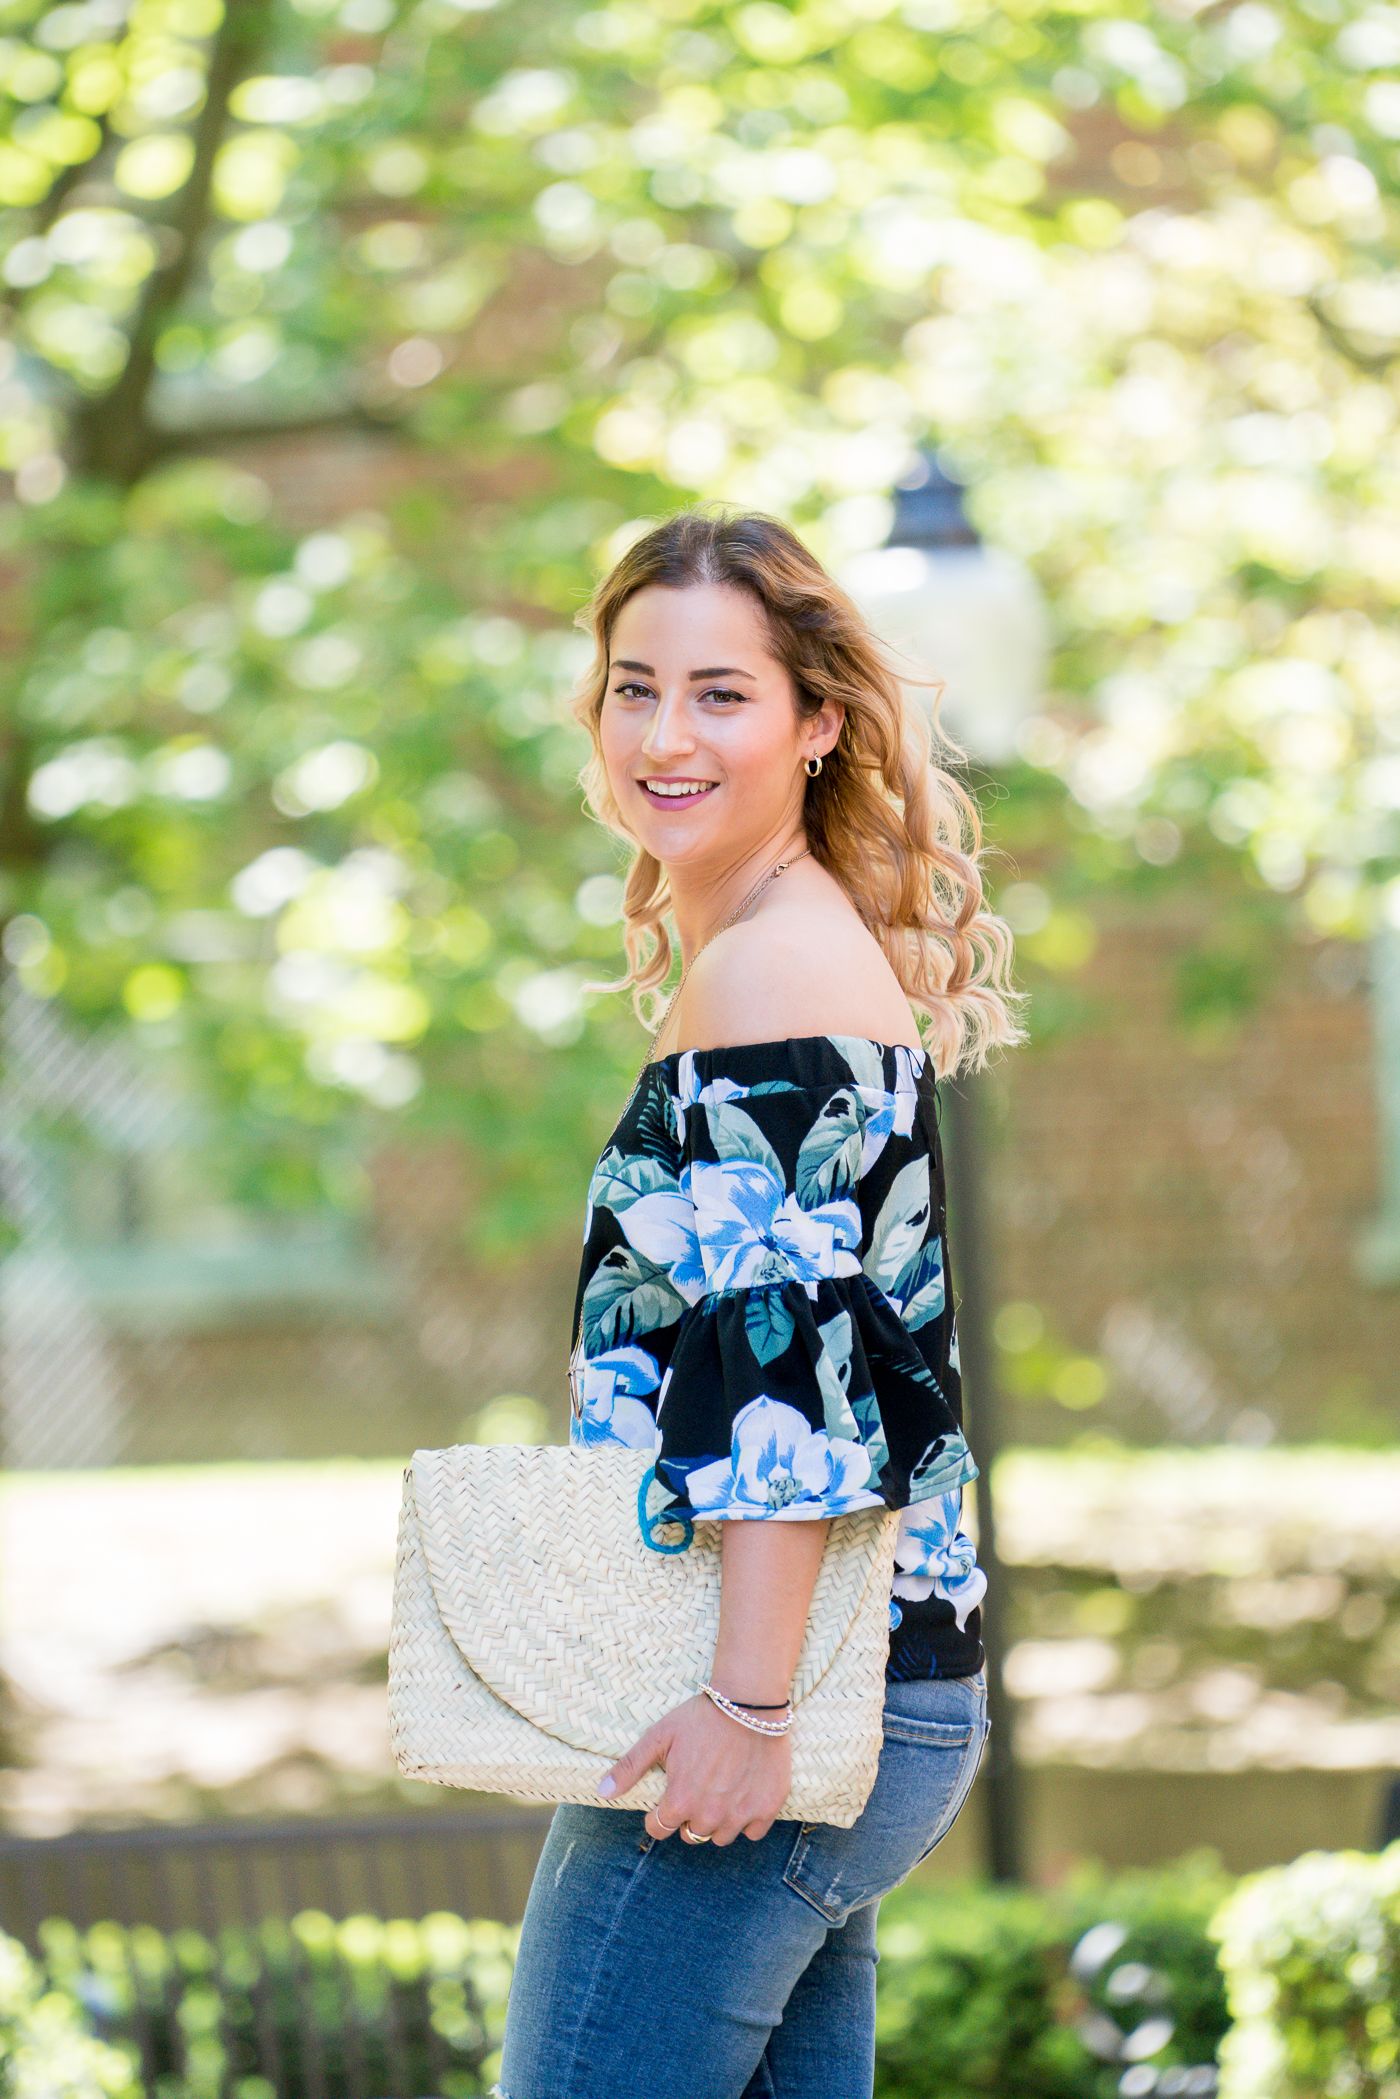 Canadian lifestyle and fashion blogger, Jackie Goldhar at Something About That, wearing an OTS floral print top from Banana Republic